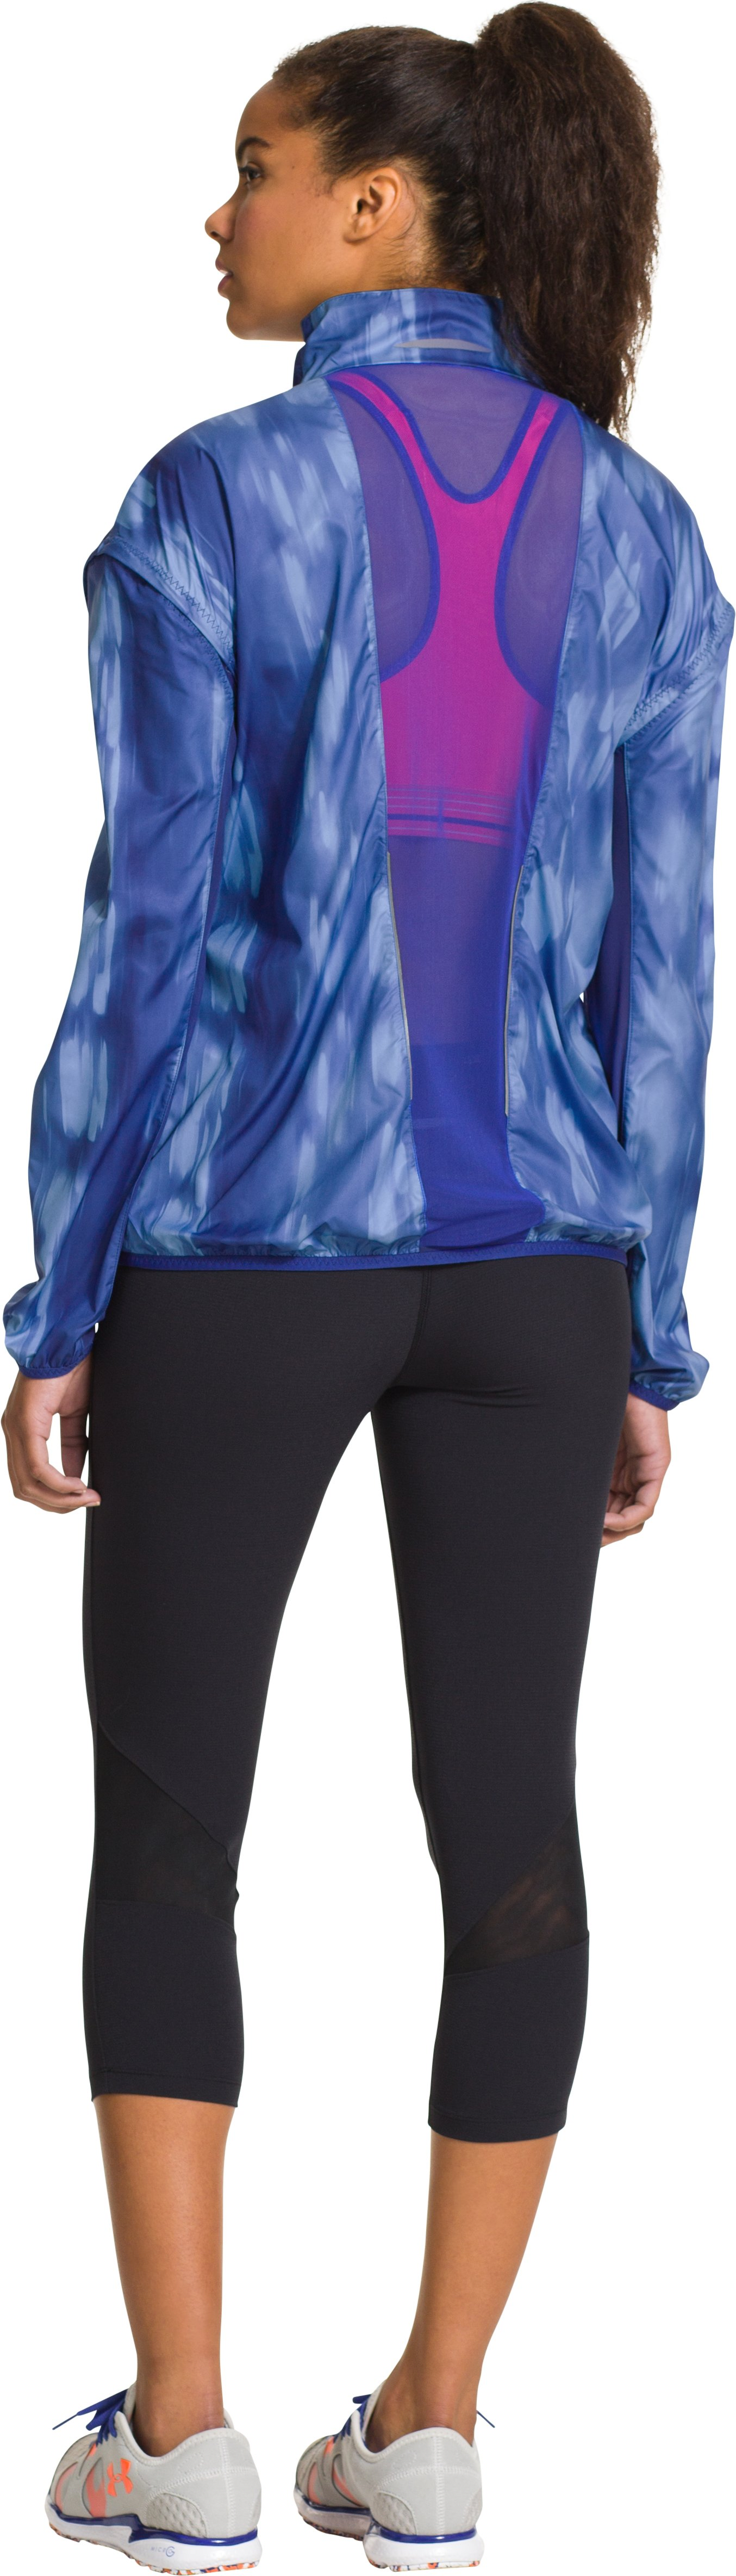 Women's UA Stunner Run Jacket, SIBERIAN IRIS, zoomed image